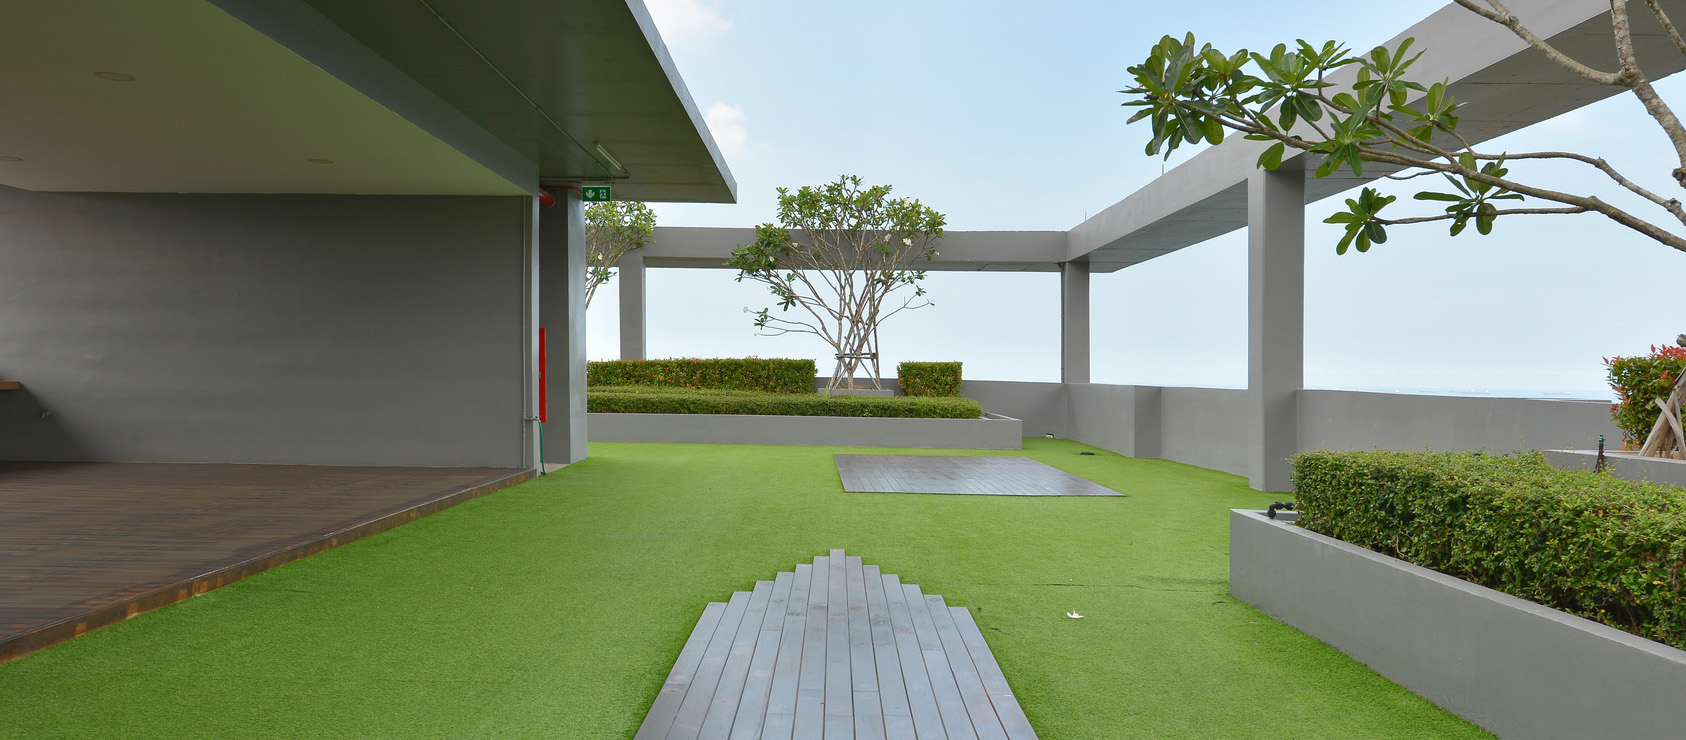 Green garden rooftop patio on modern building is attractive and environmentally friendly.